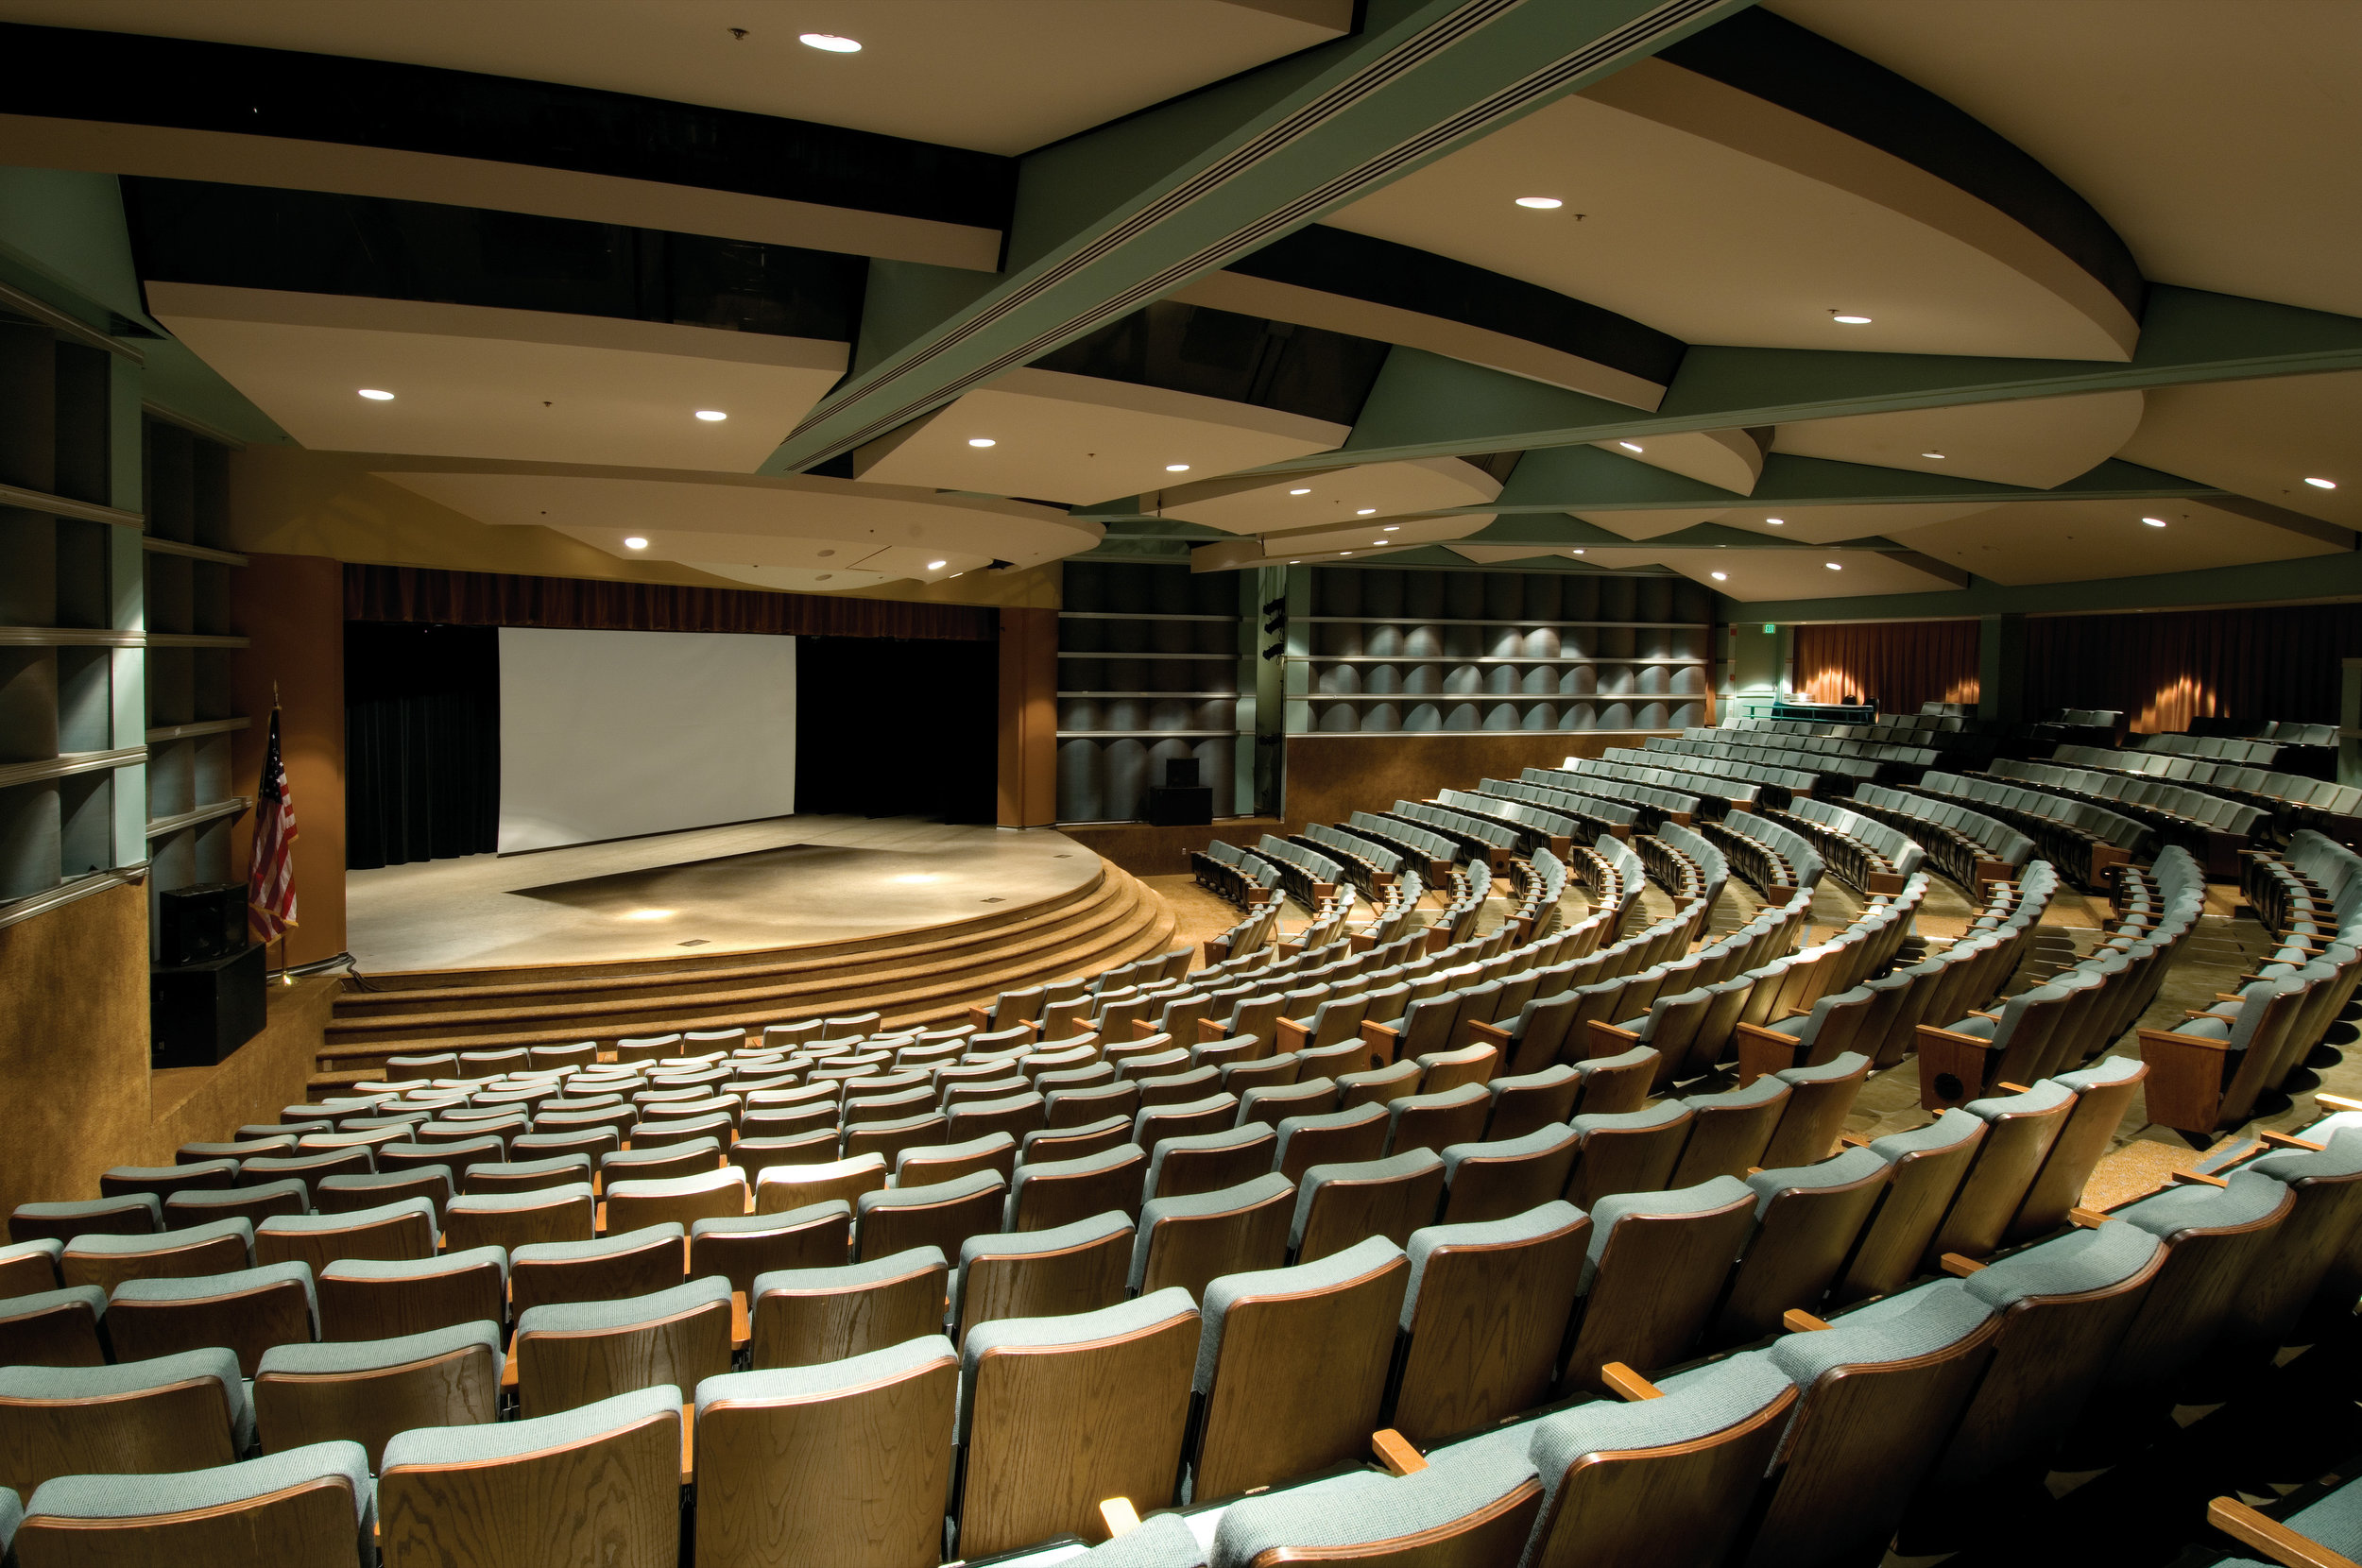 Theater showing 600 empty seats and stage